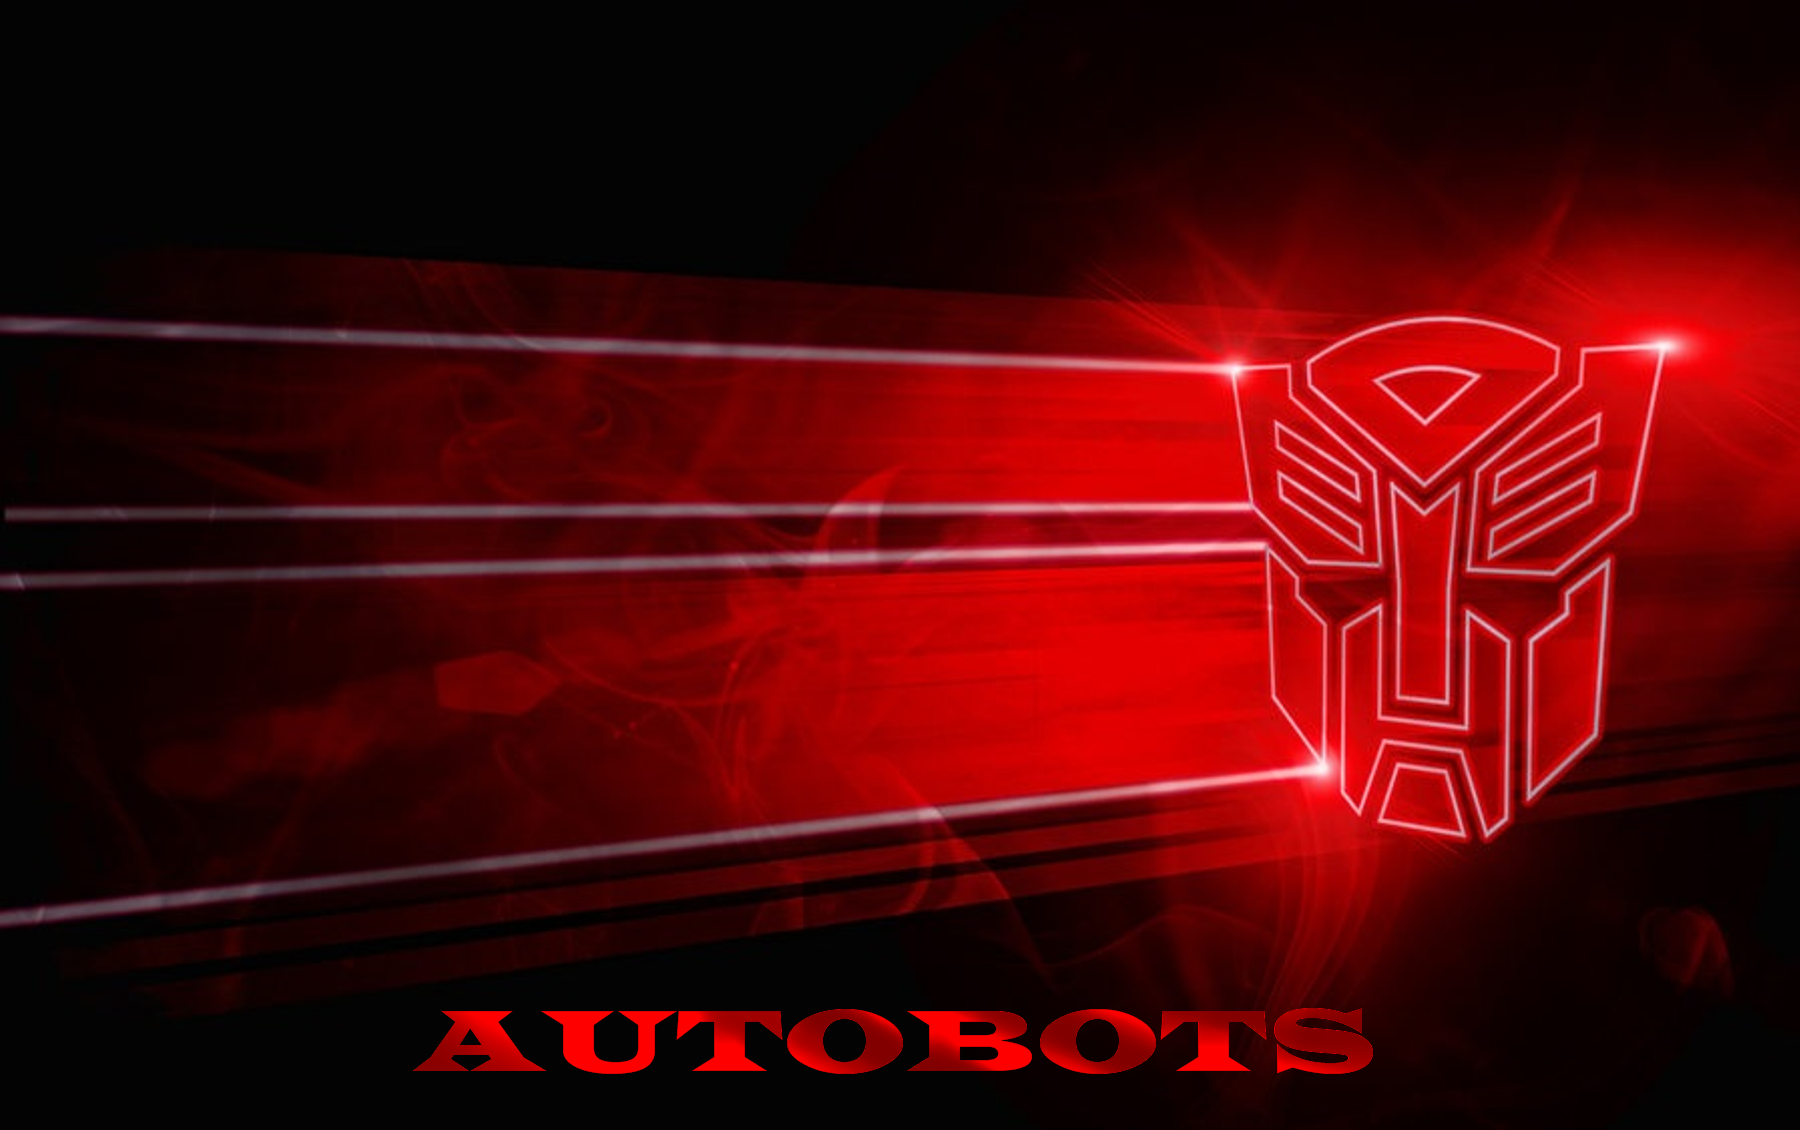 [En cours] - Everything will fade and rust 922058TFicheAutobots